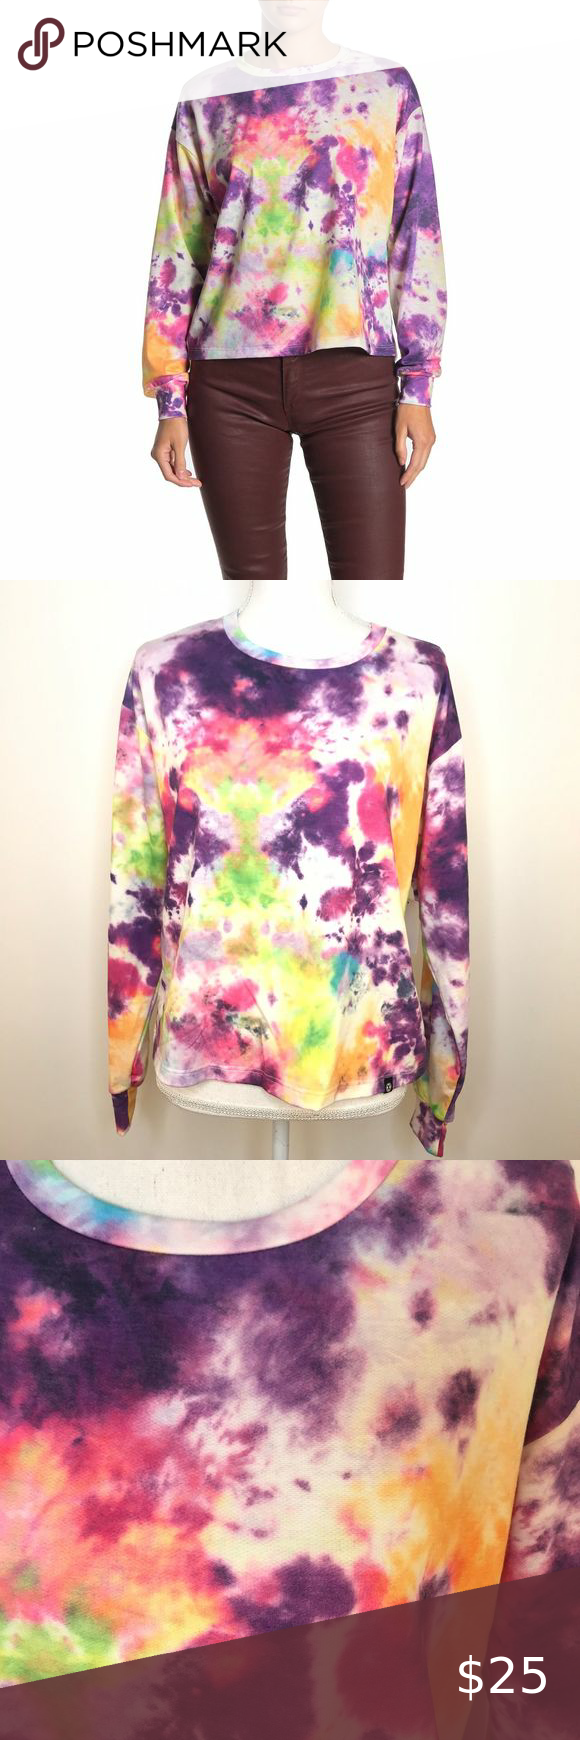 Nwt Circle X Neon Tie Dye Pullover Sweater Xs In 2021 Pullover Sweaters Vintage Crewneck Tie Dye [ 1740 x 580 Pixel ]